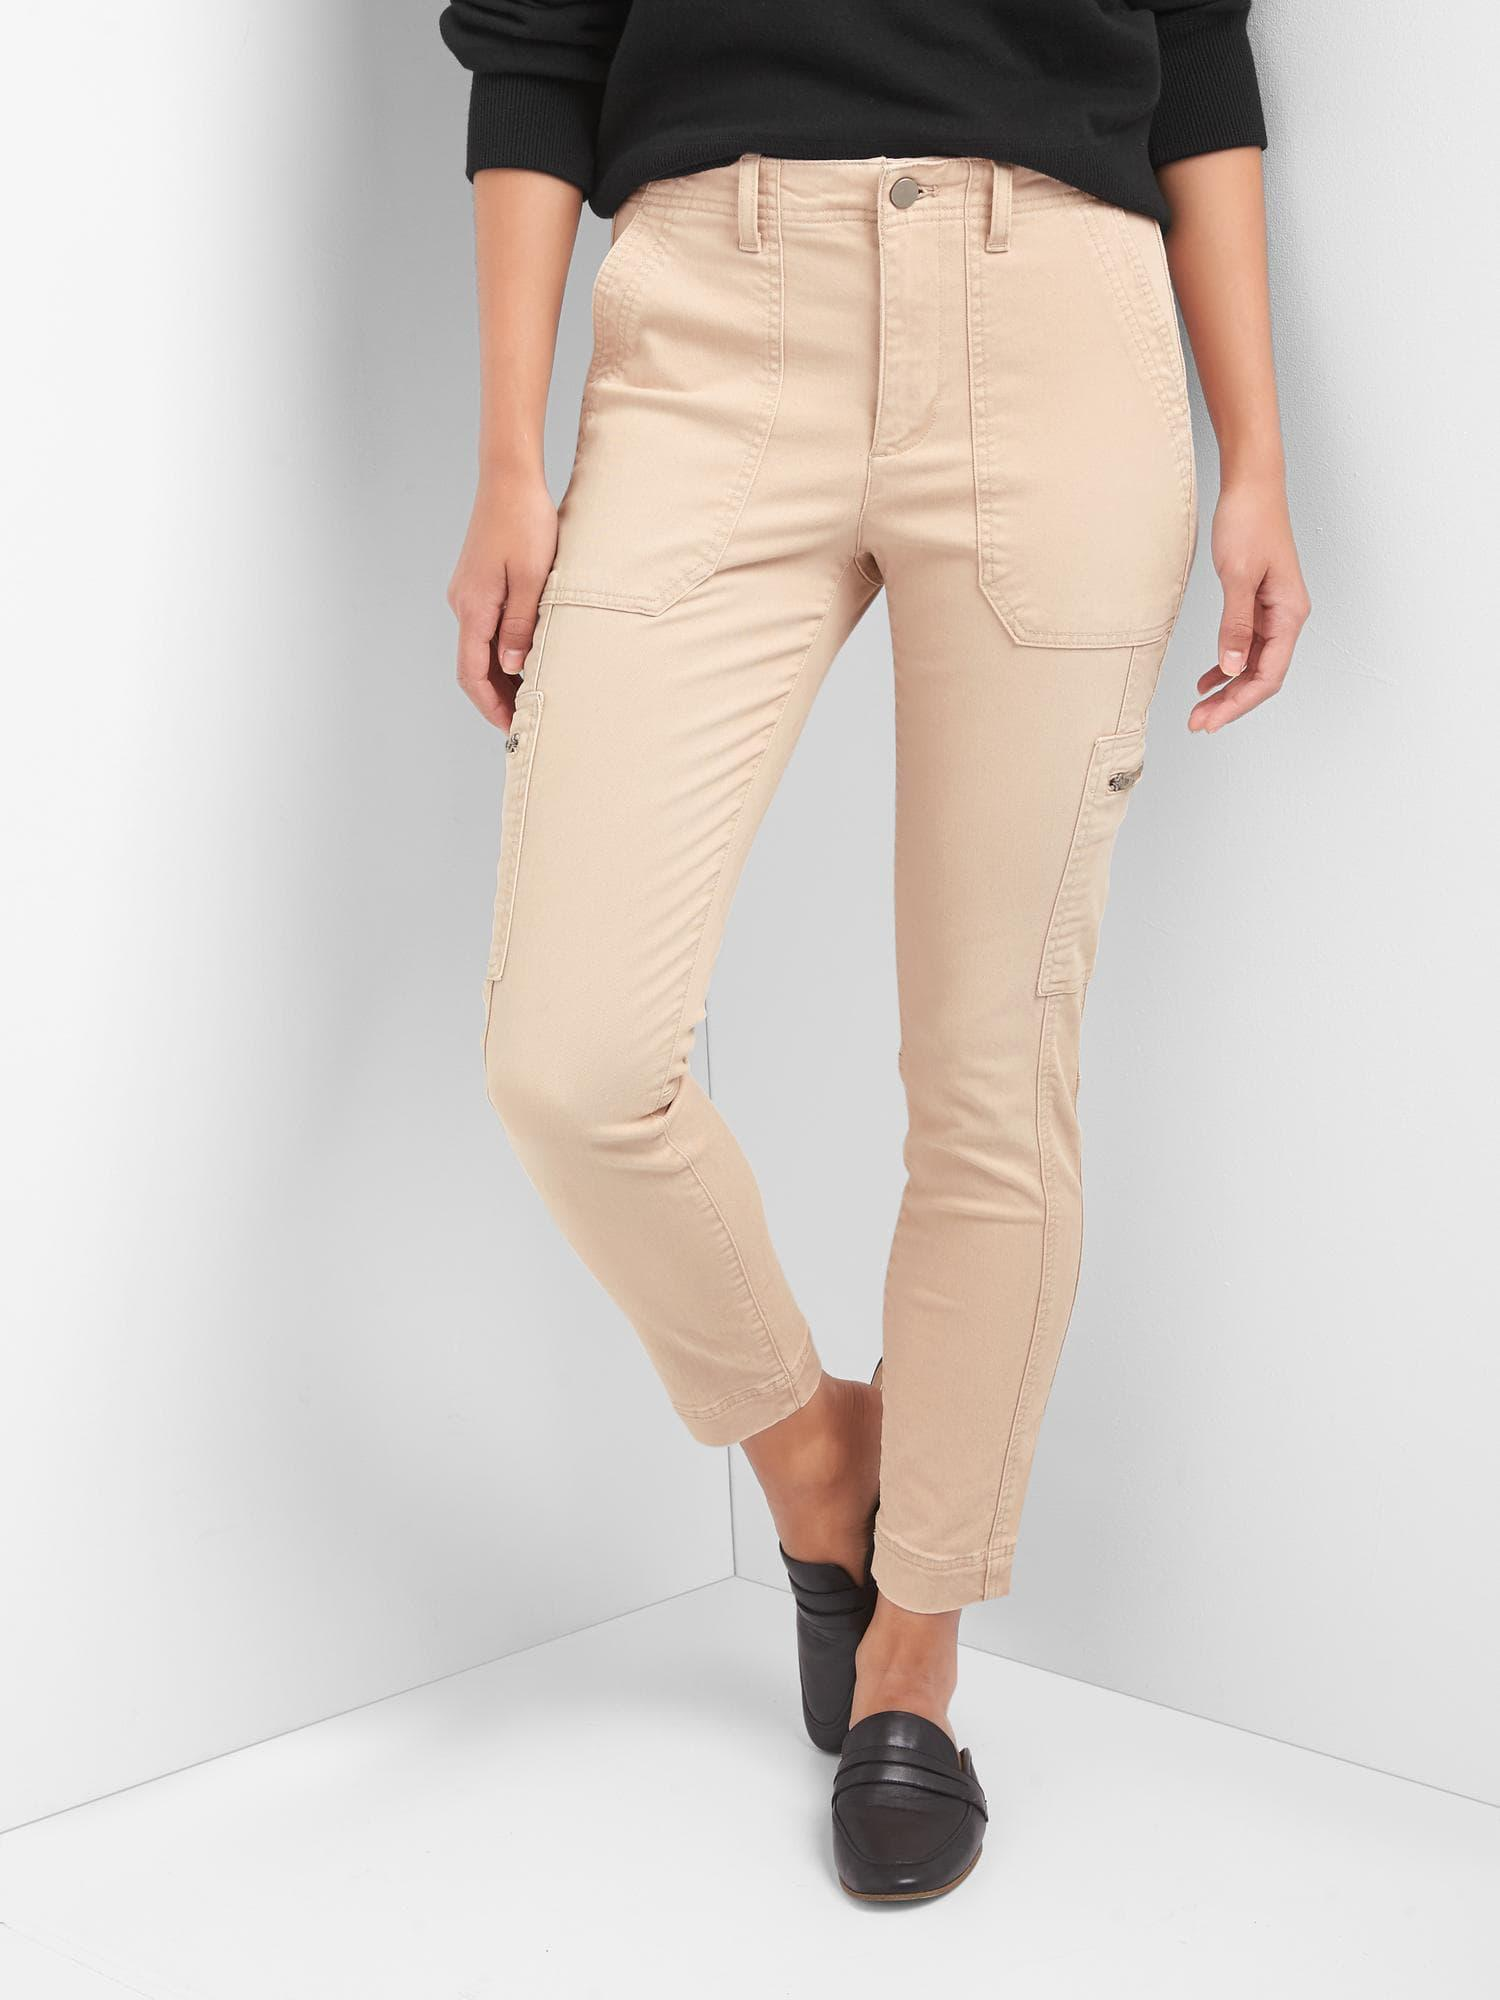 Lyst - Gap High Rise Skinny Ankle Utility Chinos in Natural 3ebd4ff44